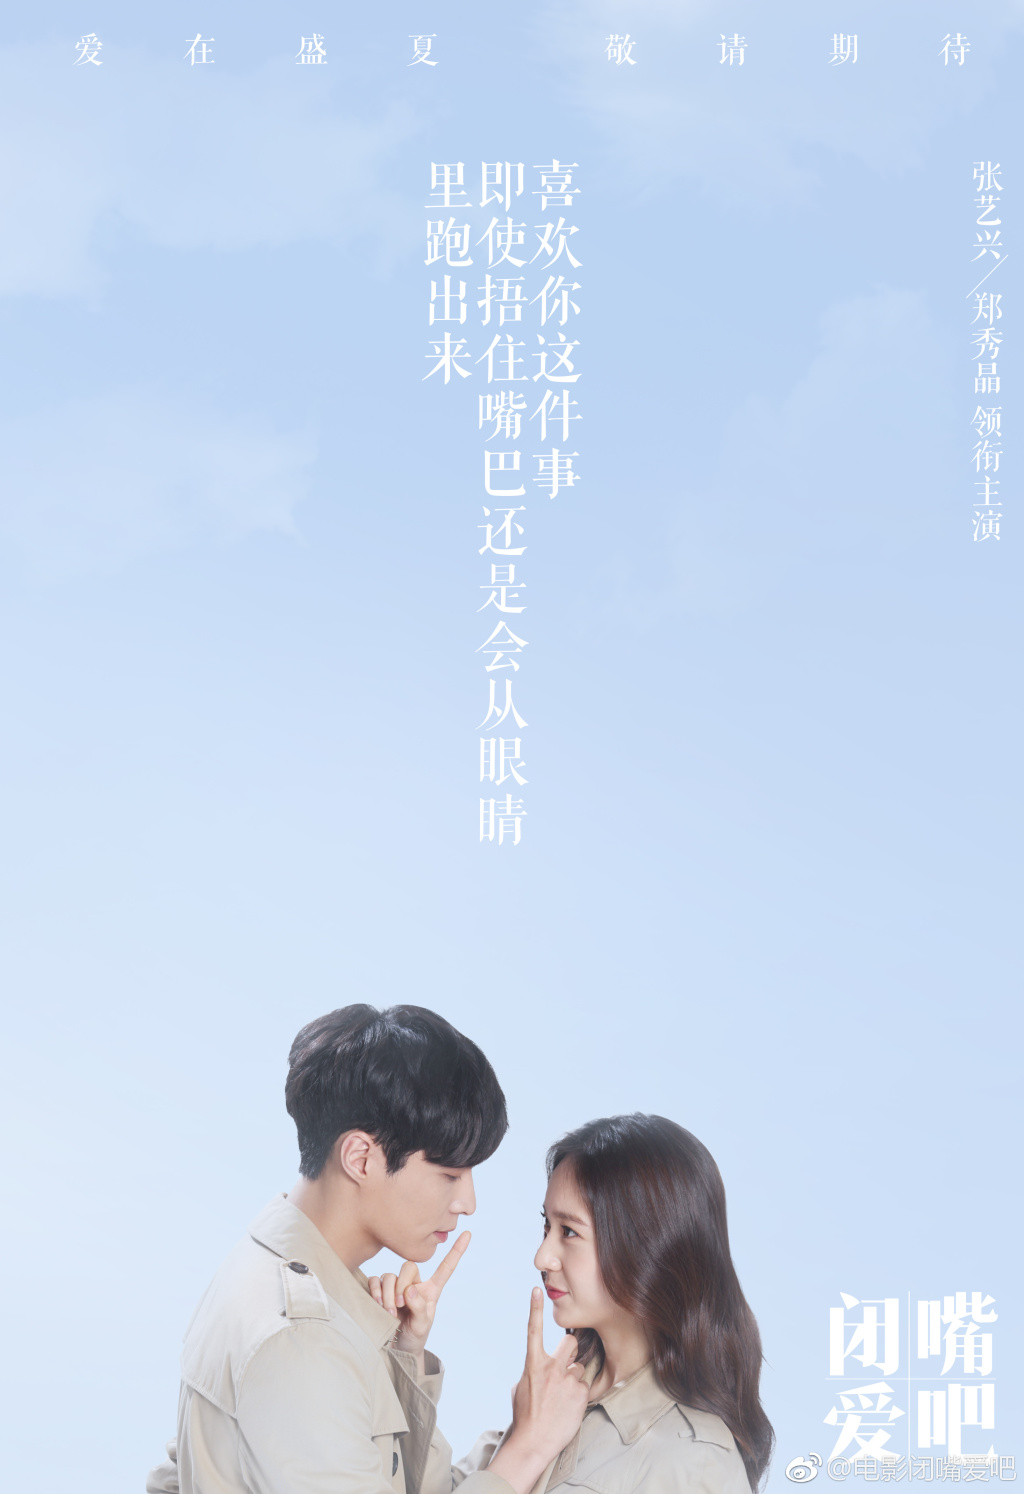 Unexpected Love With Zhang Yixing And Krystal Jung Coming Soon